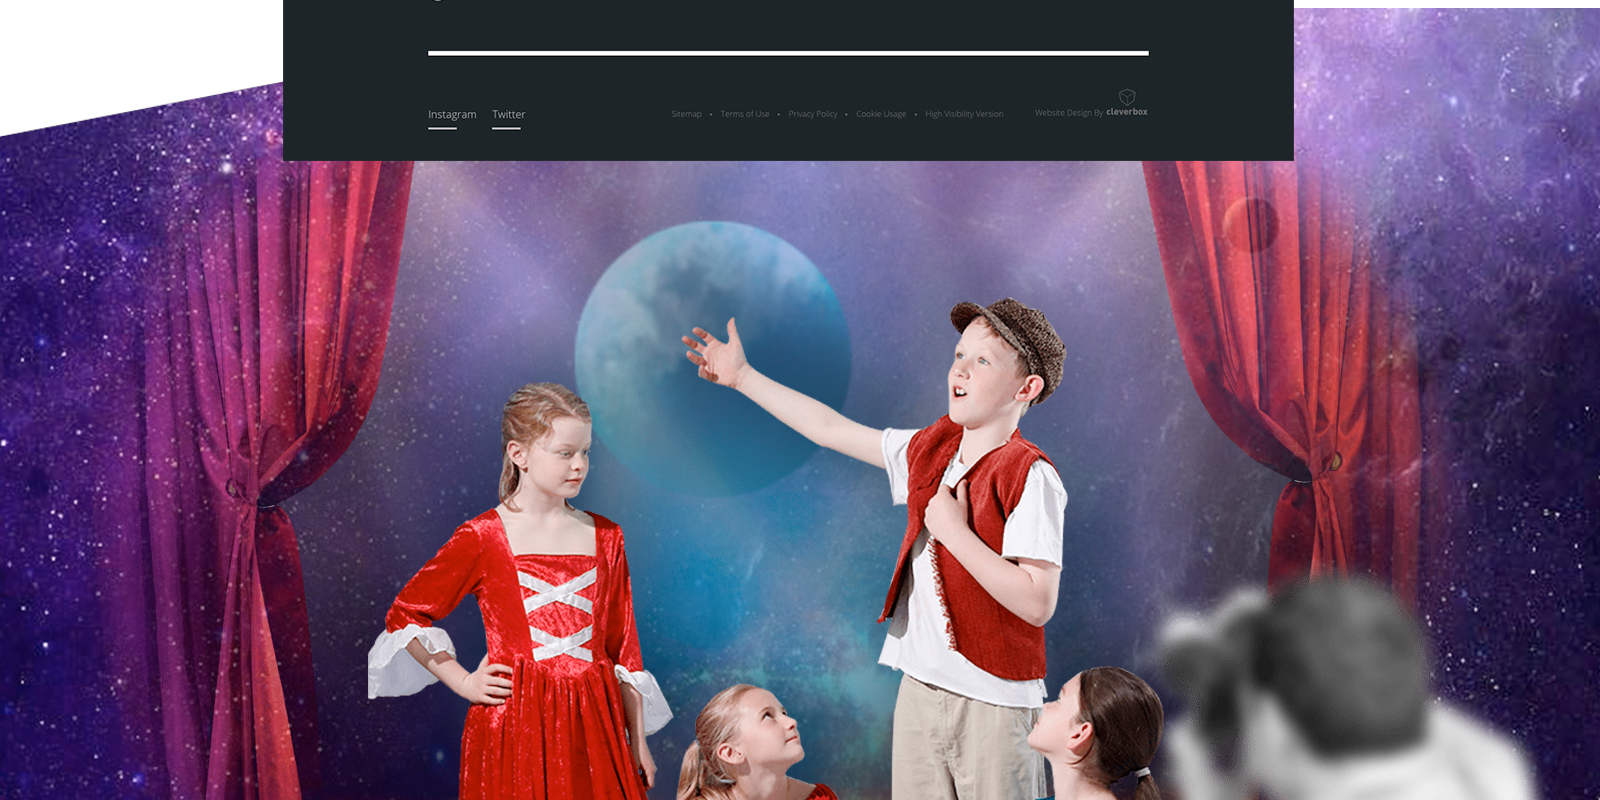 Aberdour School Website Design